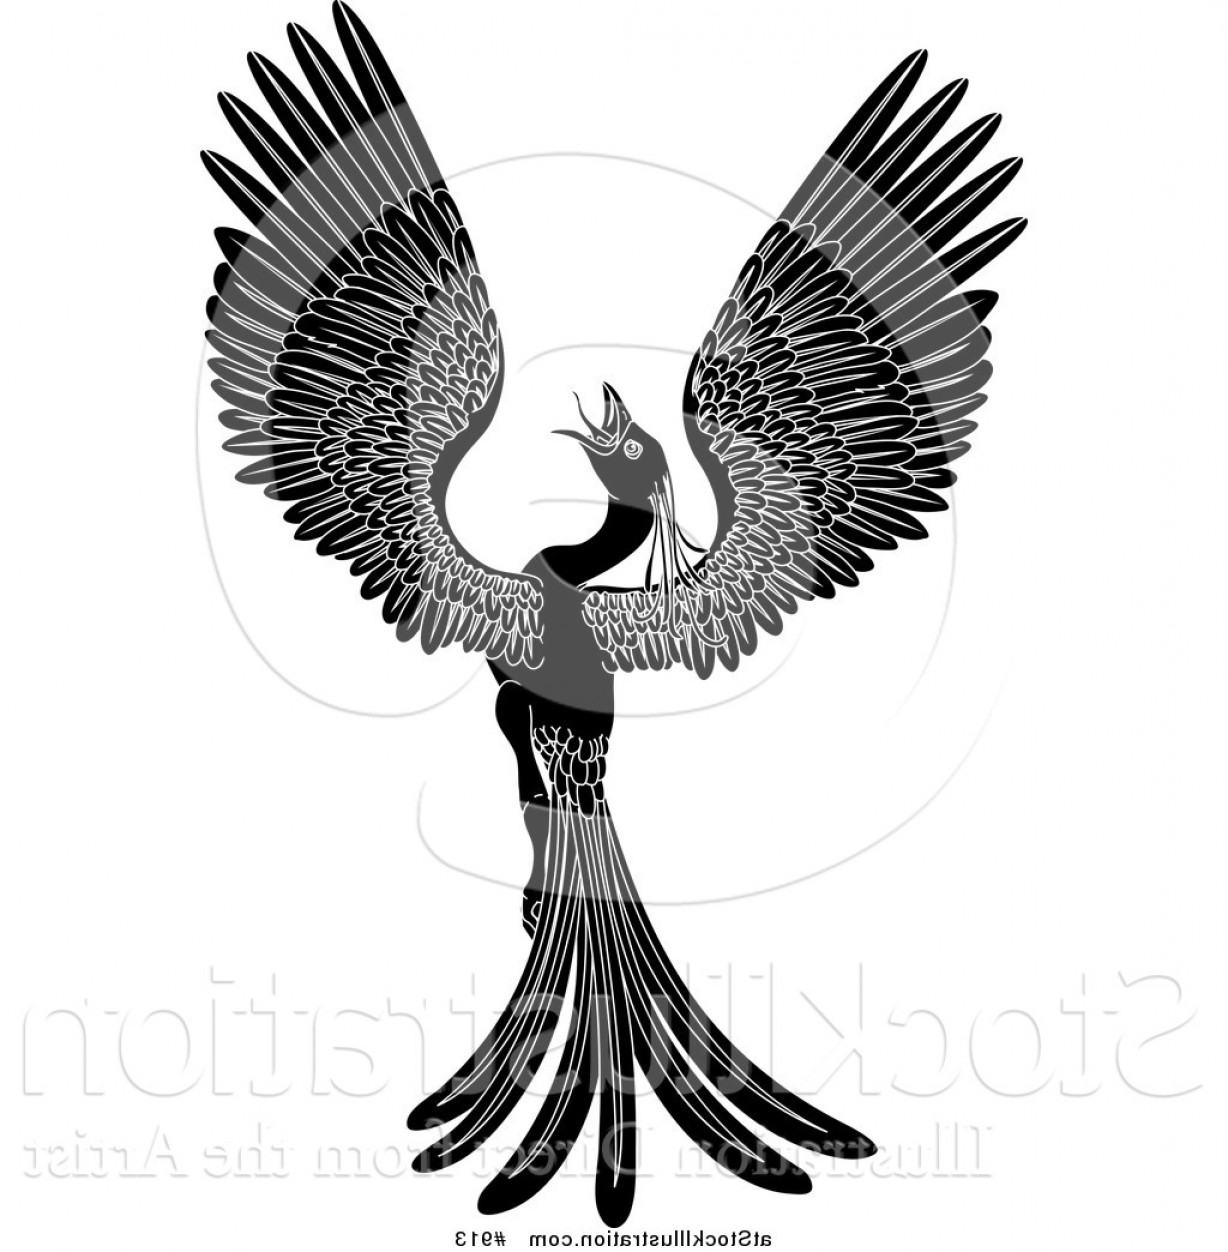 Vector Hi Res Black And White Wing: Vector Illustration Of A Black And White Majestic Phoenix Fantasy Bird Opening Its Wings By Atstockillustration